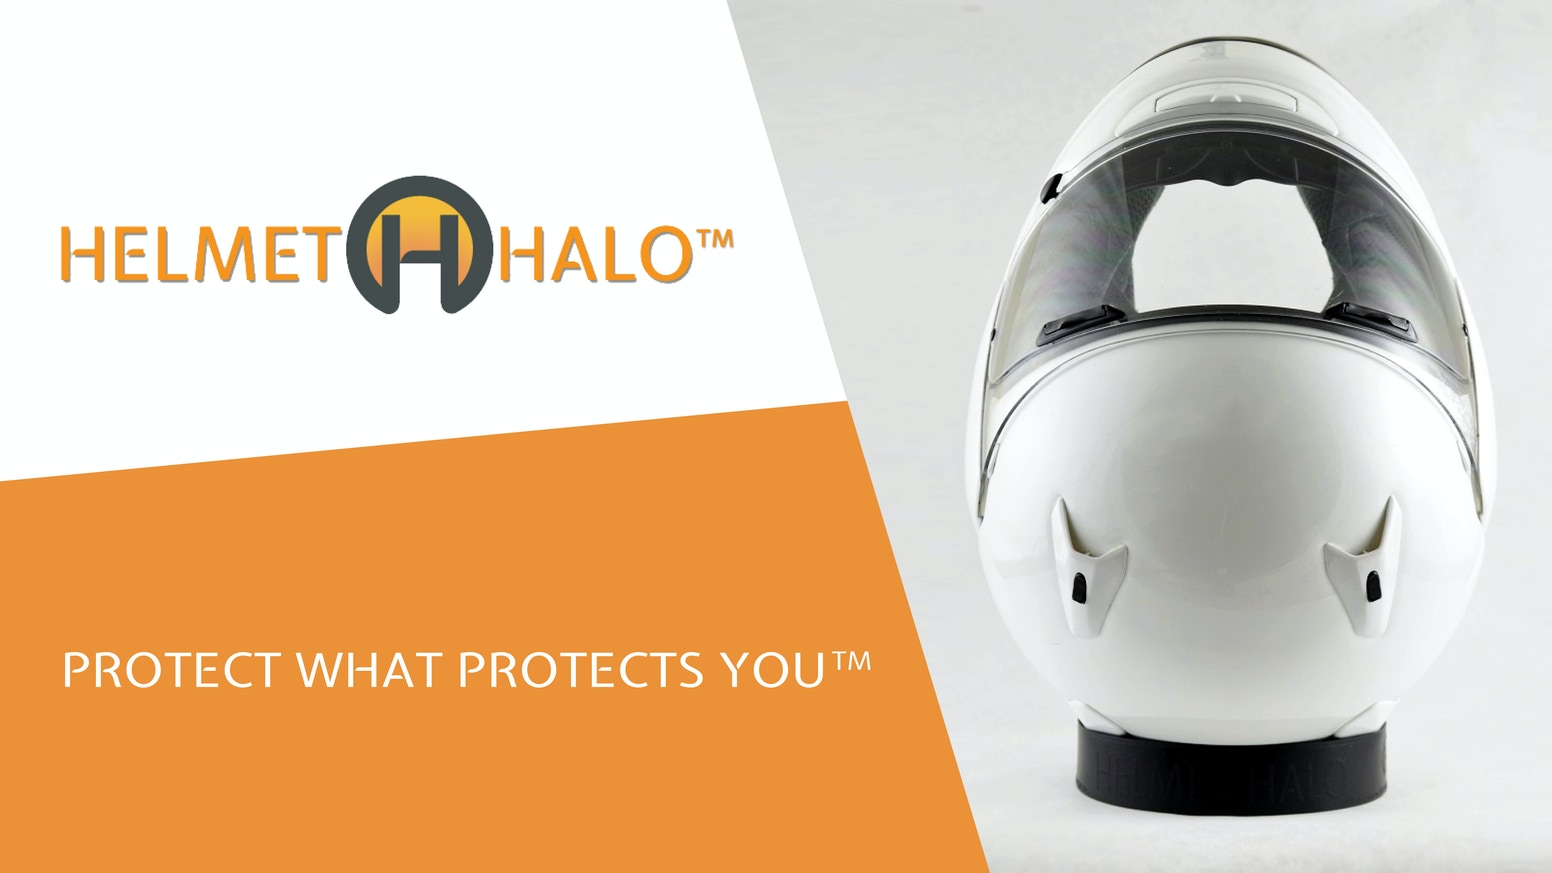 Helmet Halo is the motorcycle helmet holder that fits in your pocket & goes everywhere. Flexible, strong, and easy to use.